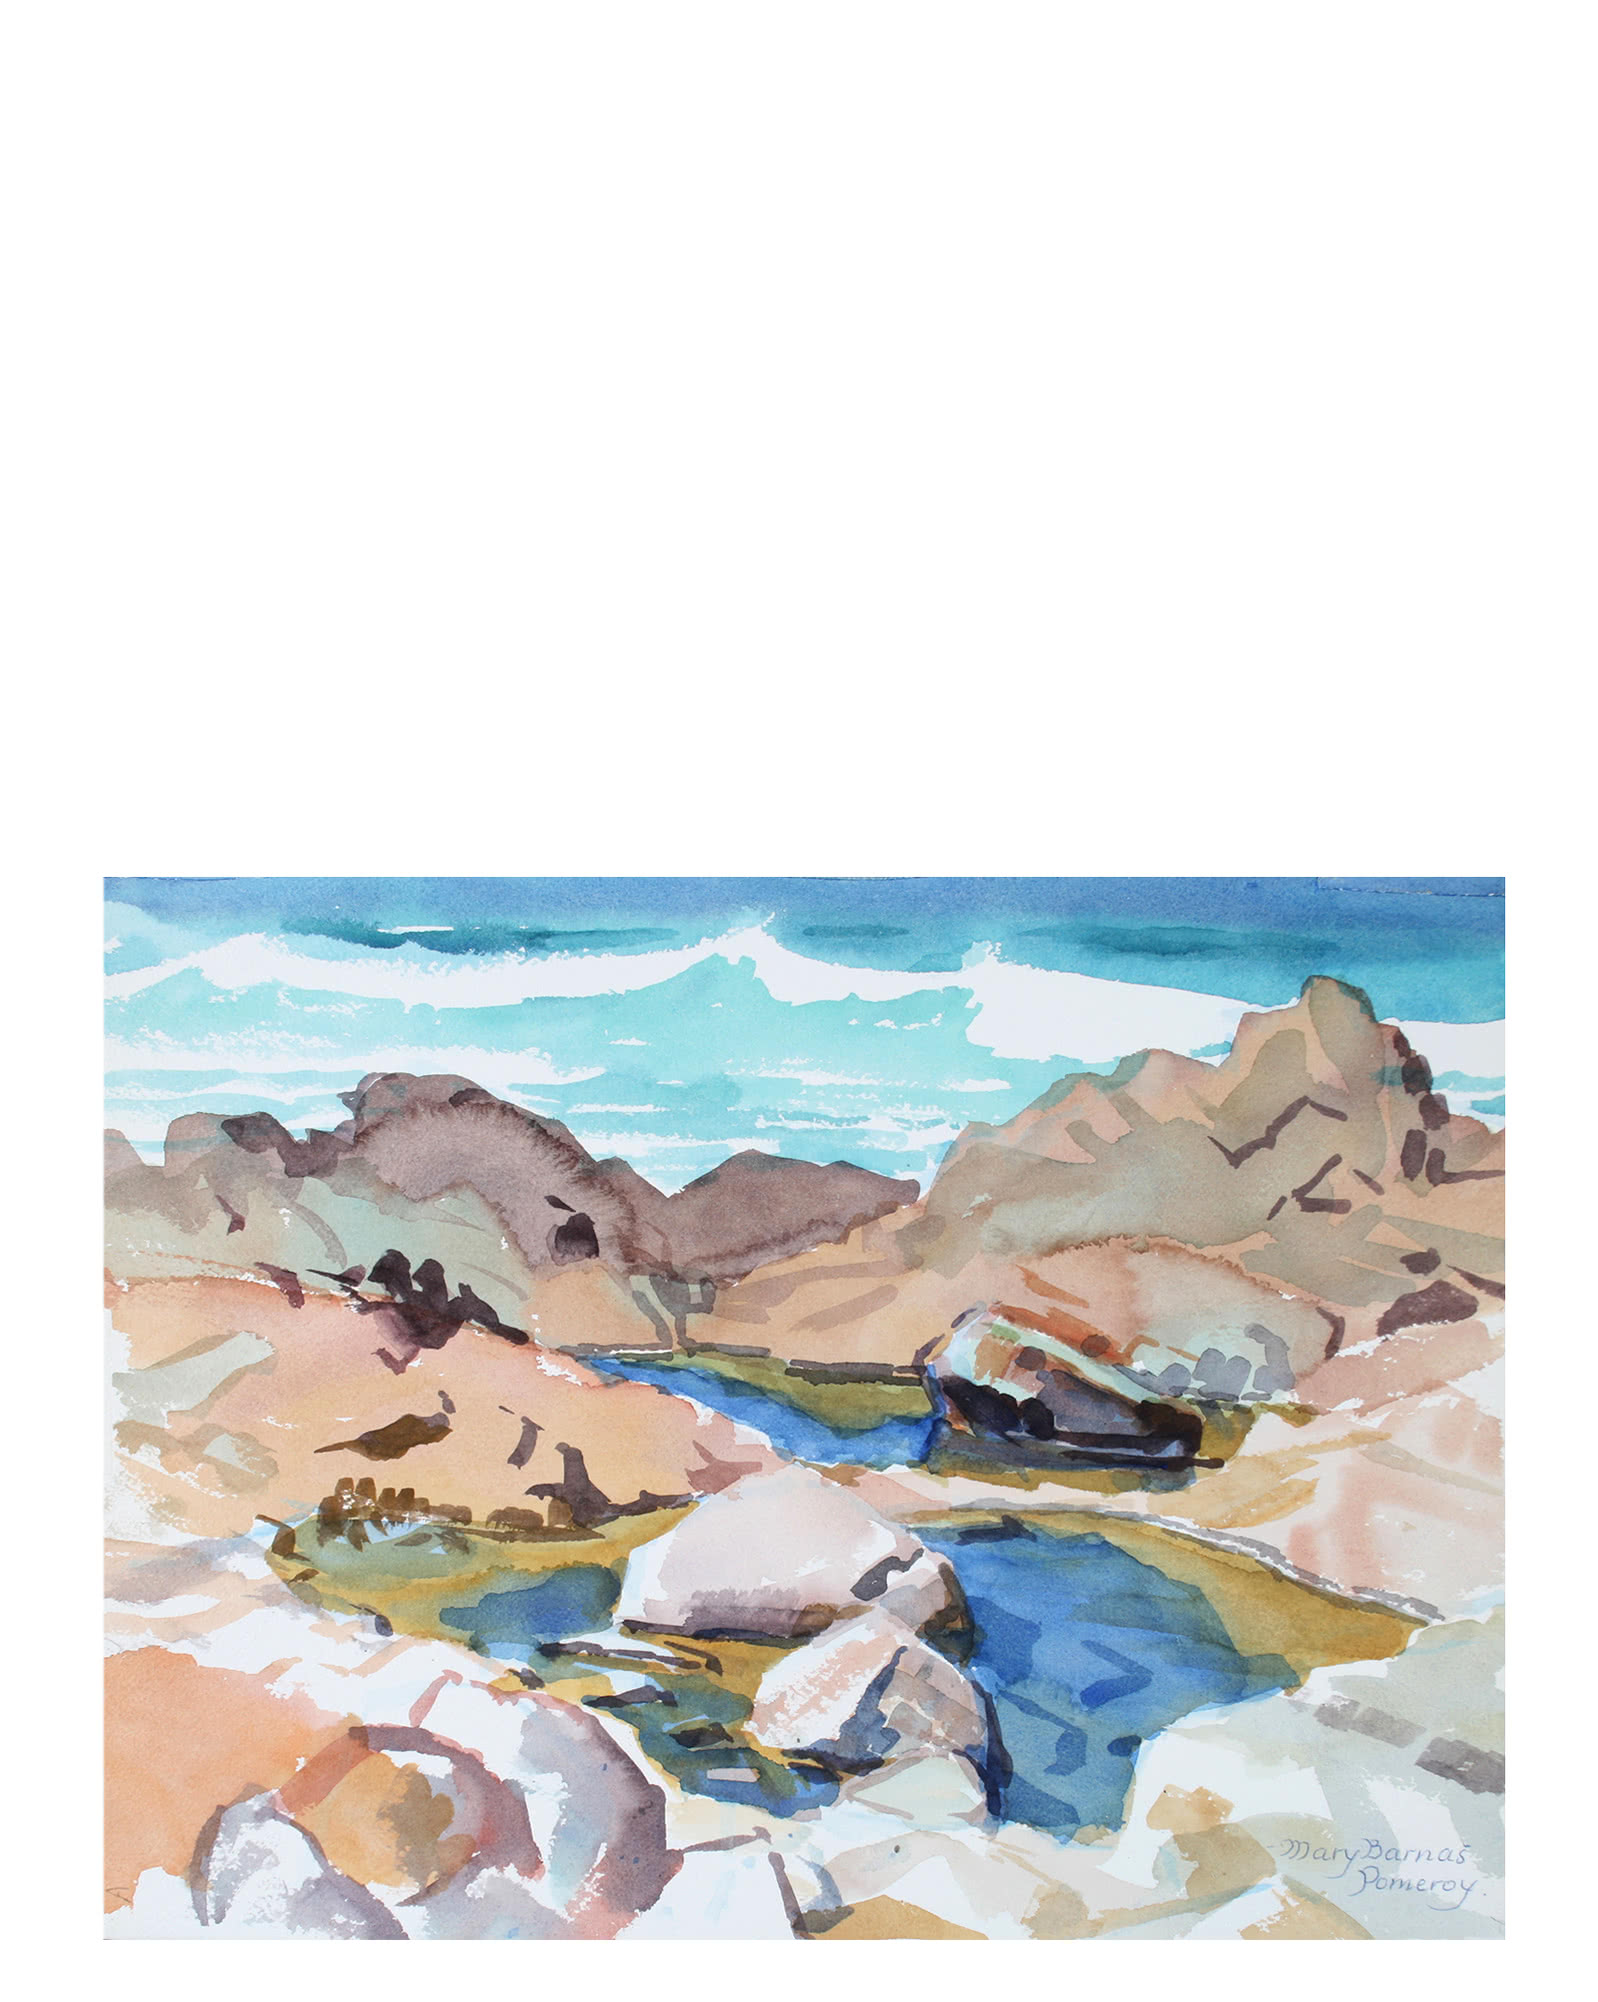 """Tidepool - Pacific Grove"" by Mary Pomeroy,"